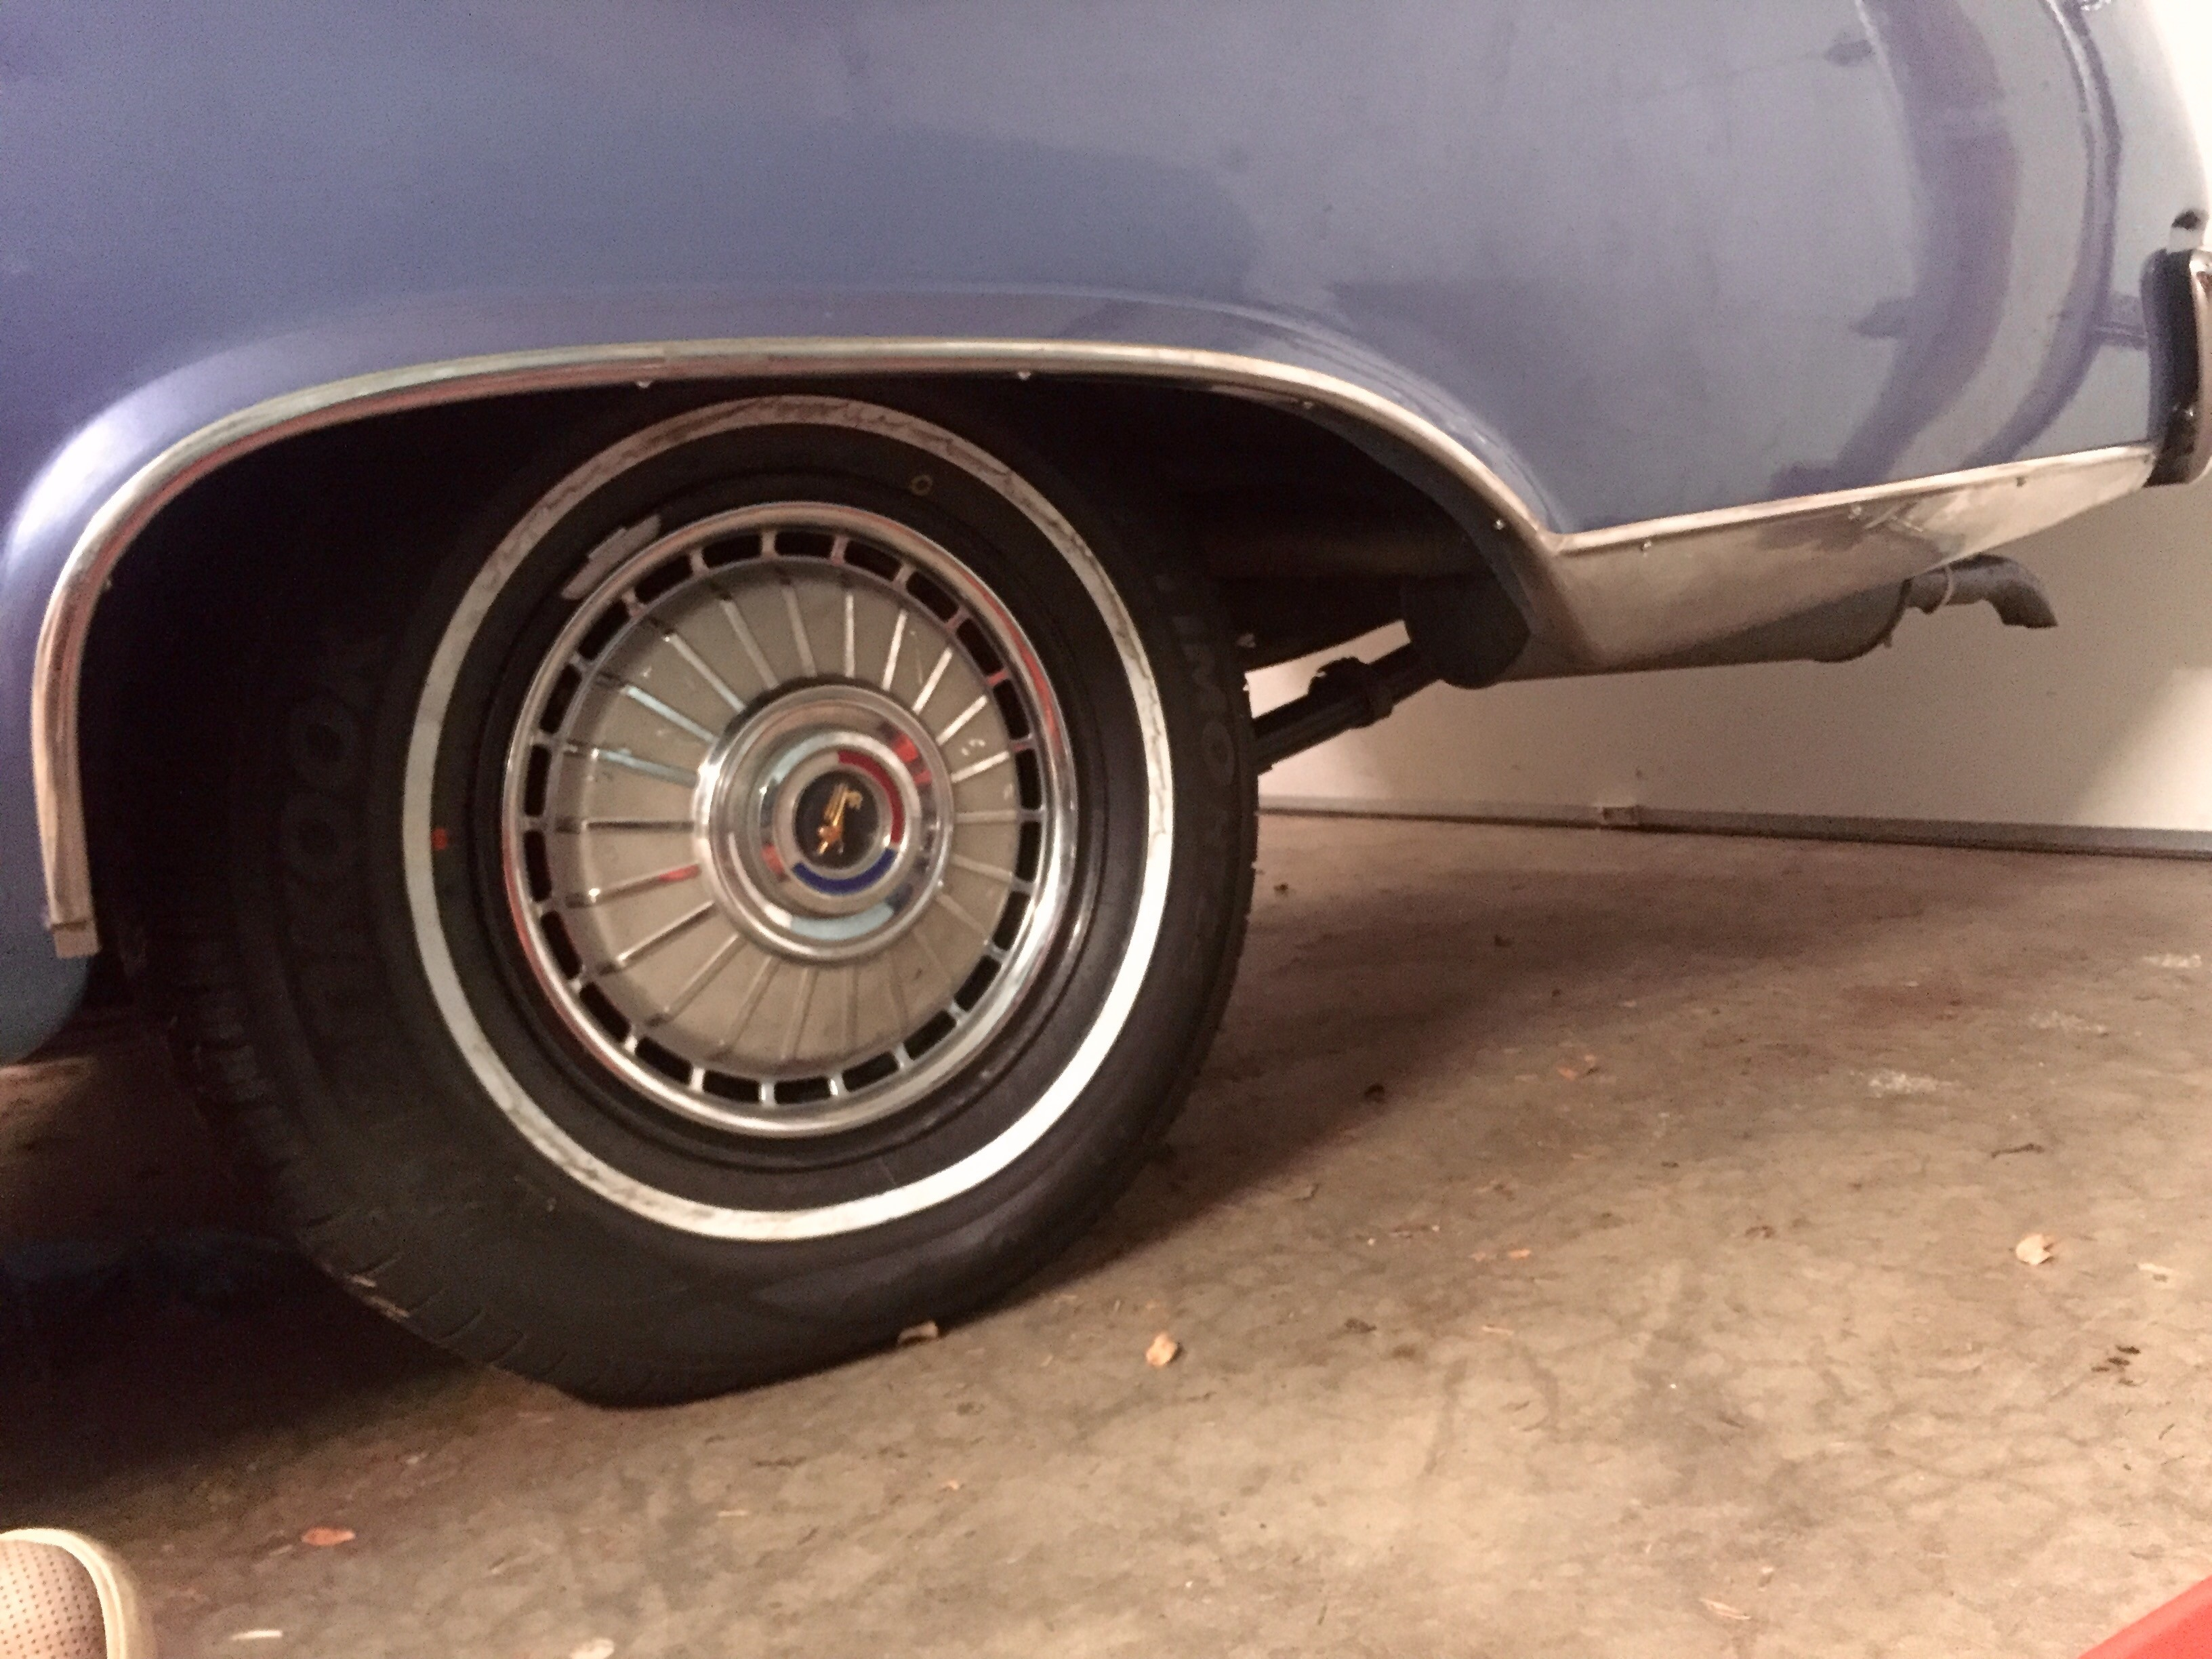 1962 Galaxie wheel well molding and rear rocker panel trim